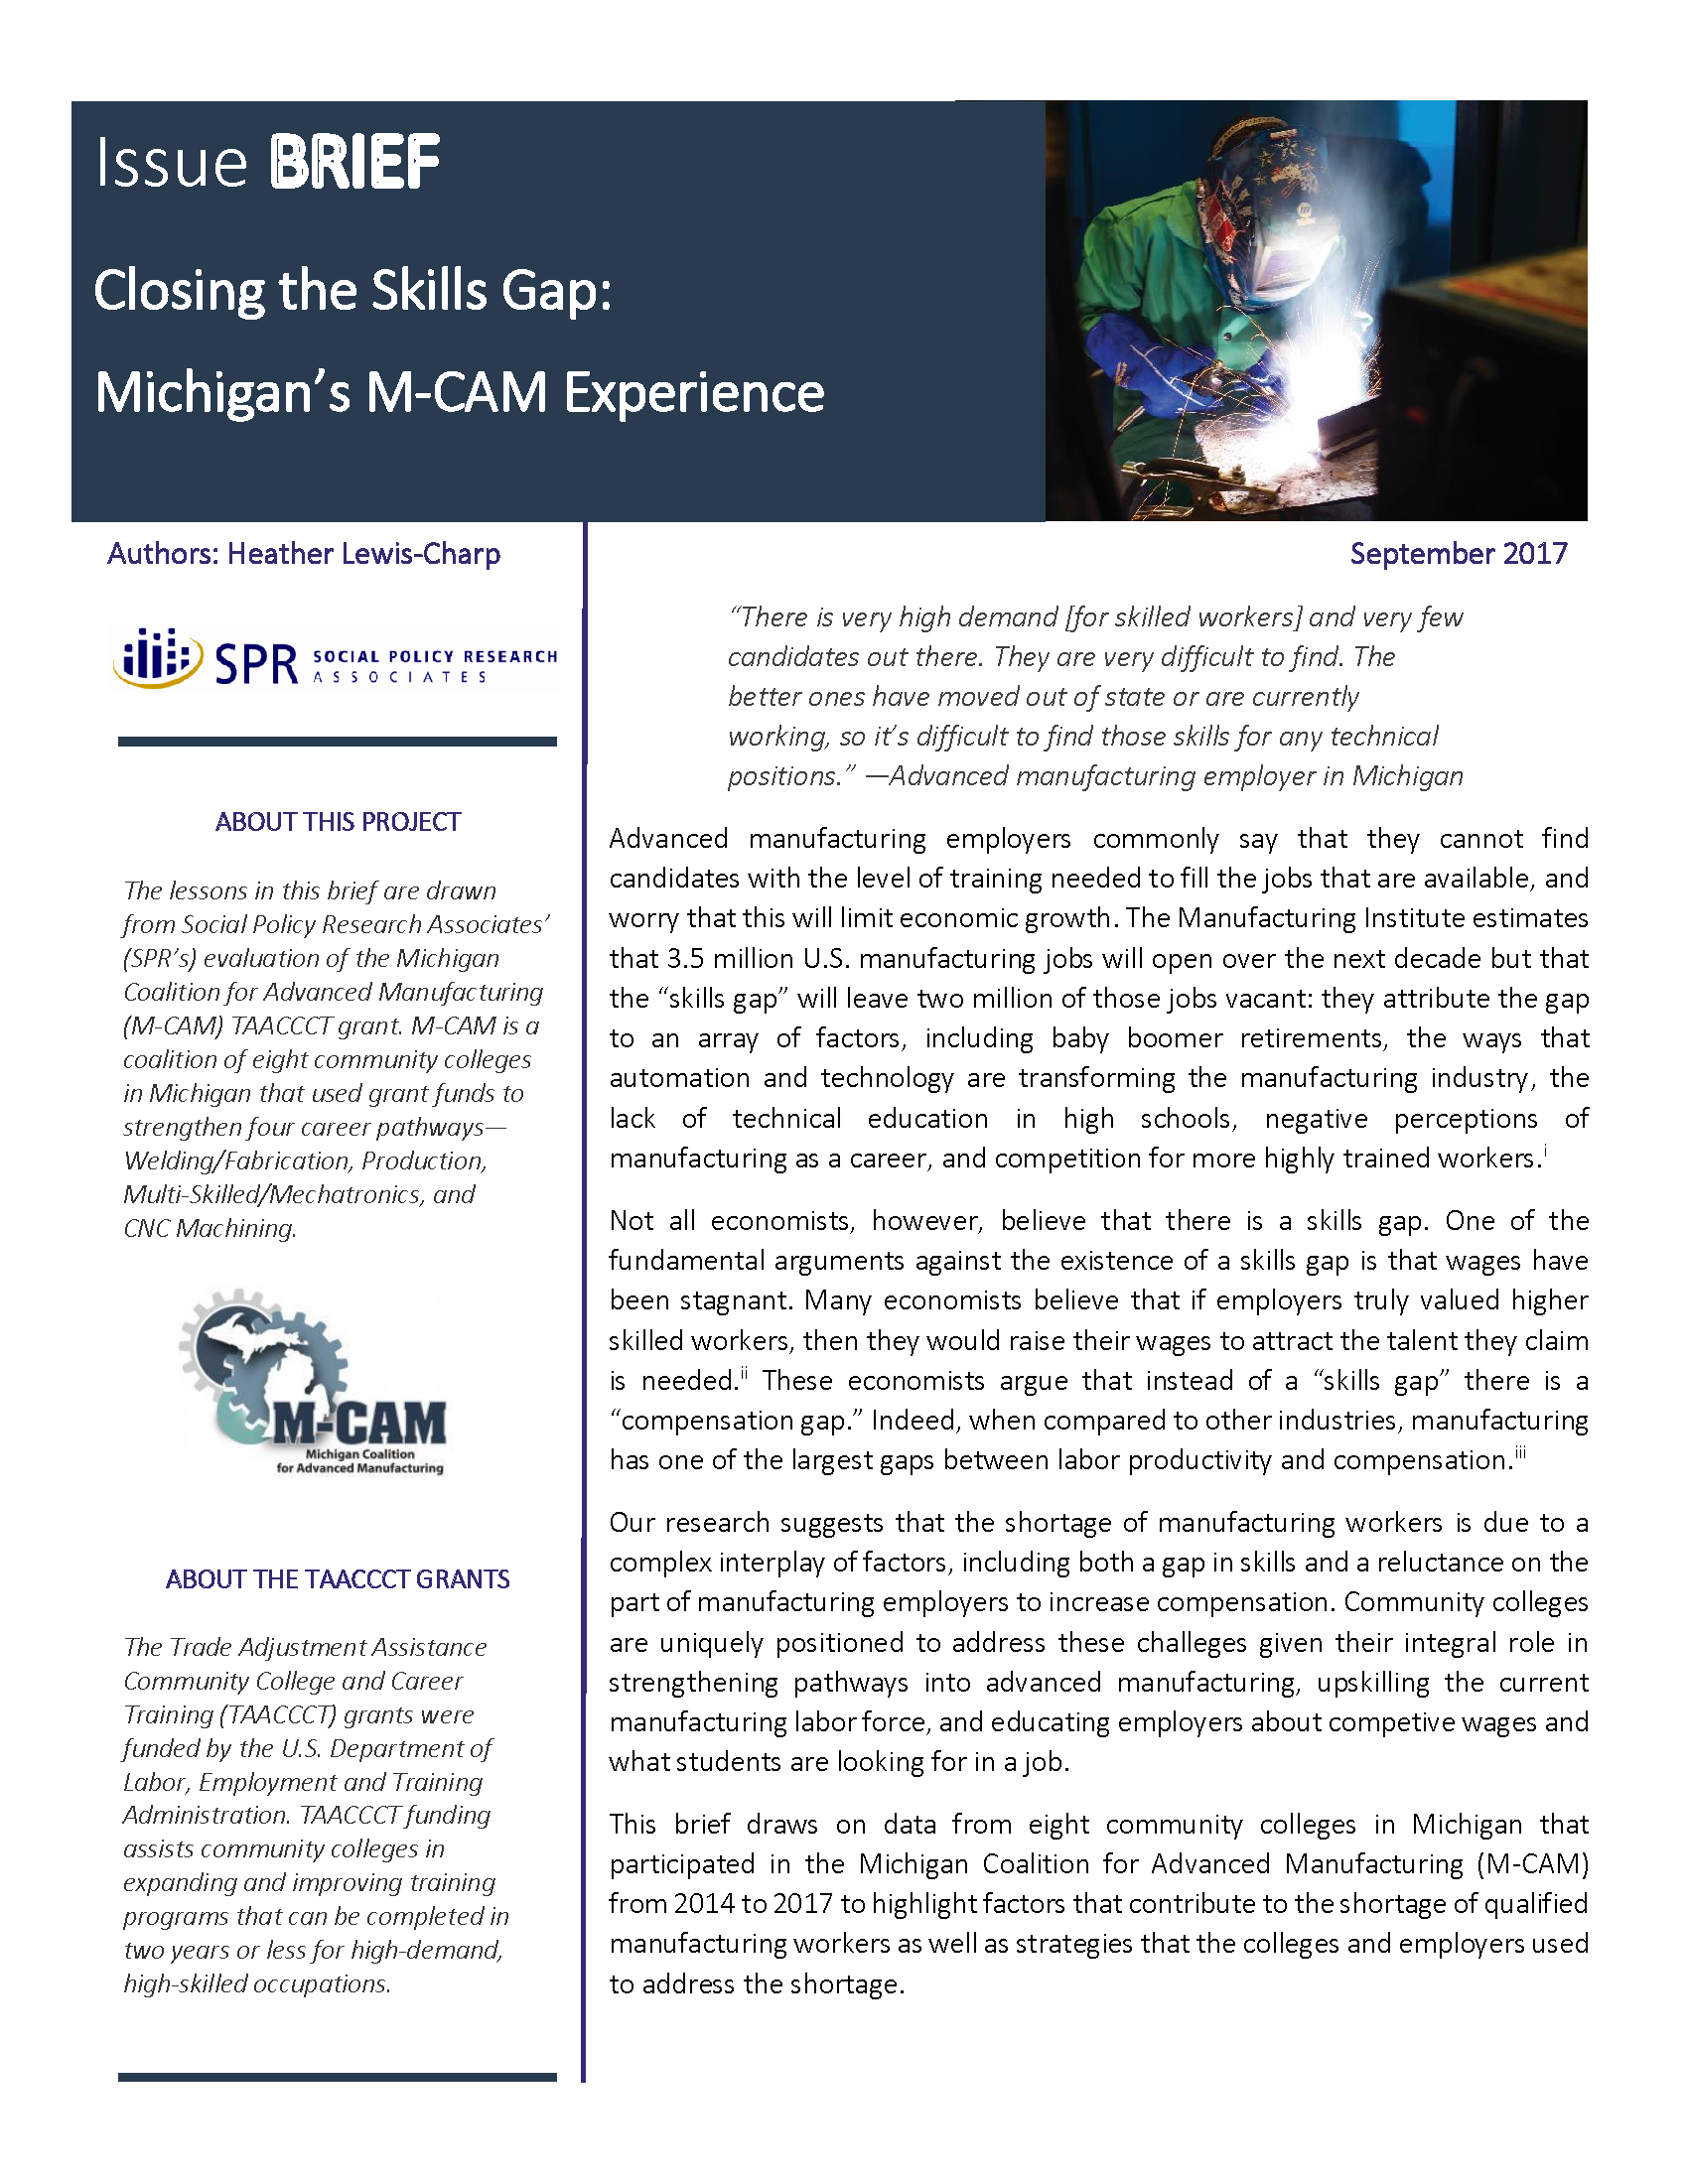 Cover of Closing the Skills Gap: Michigan's M-CAM Experience Brief